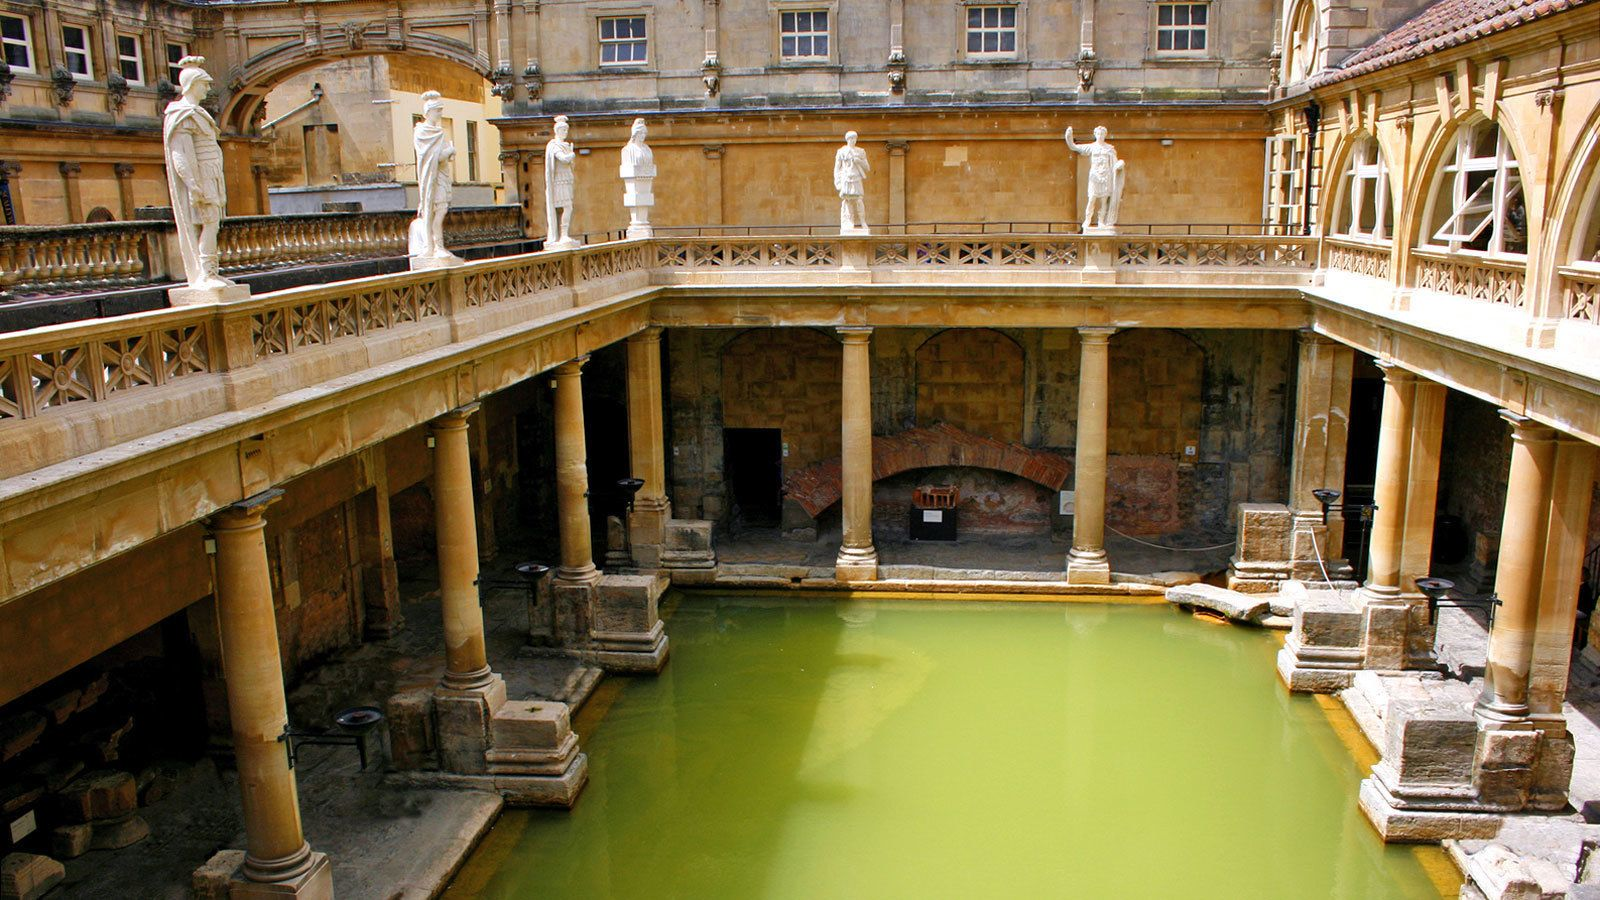 visiting the Stonehenge and bath in London